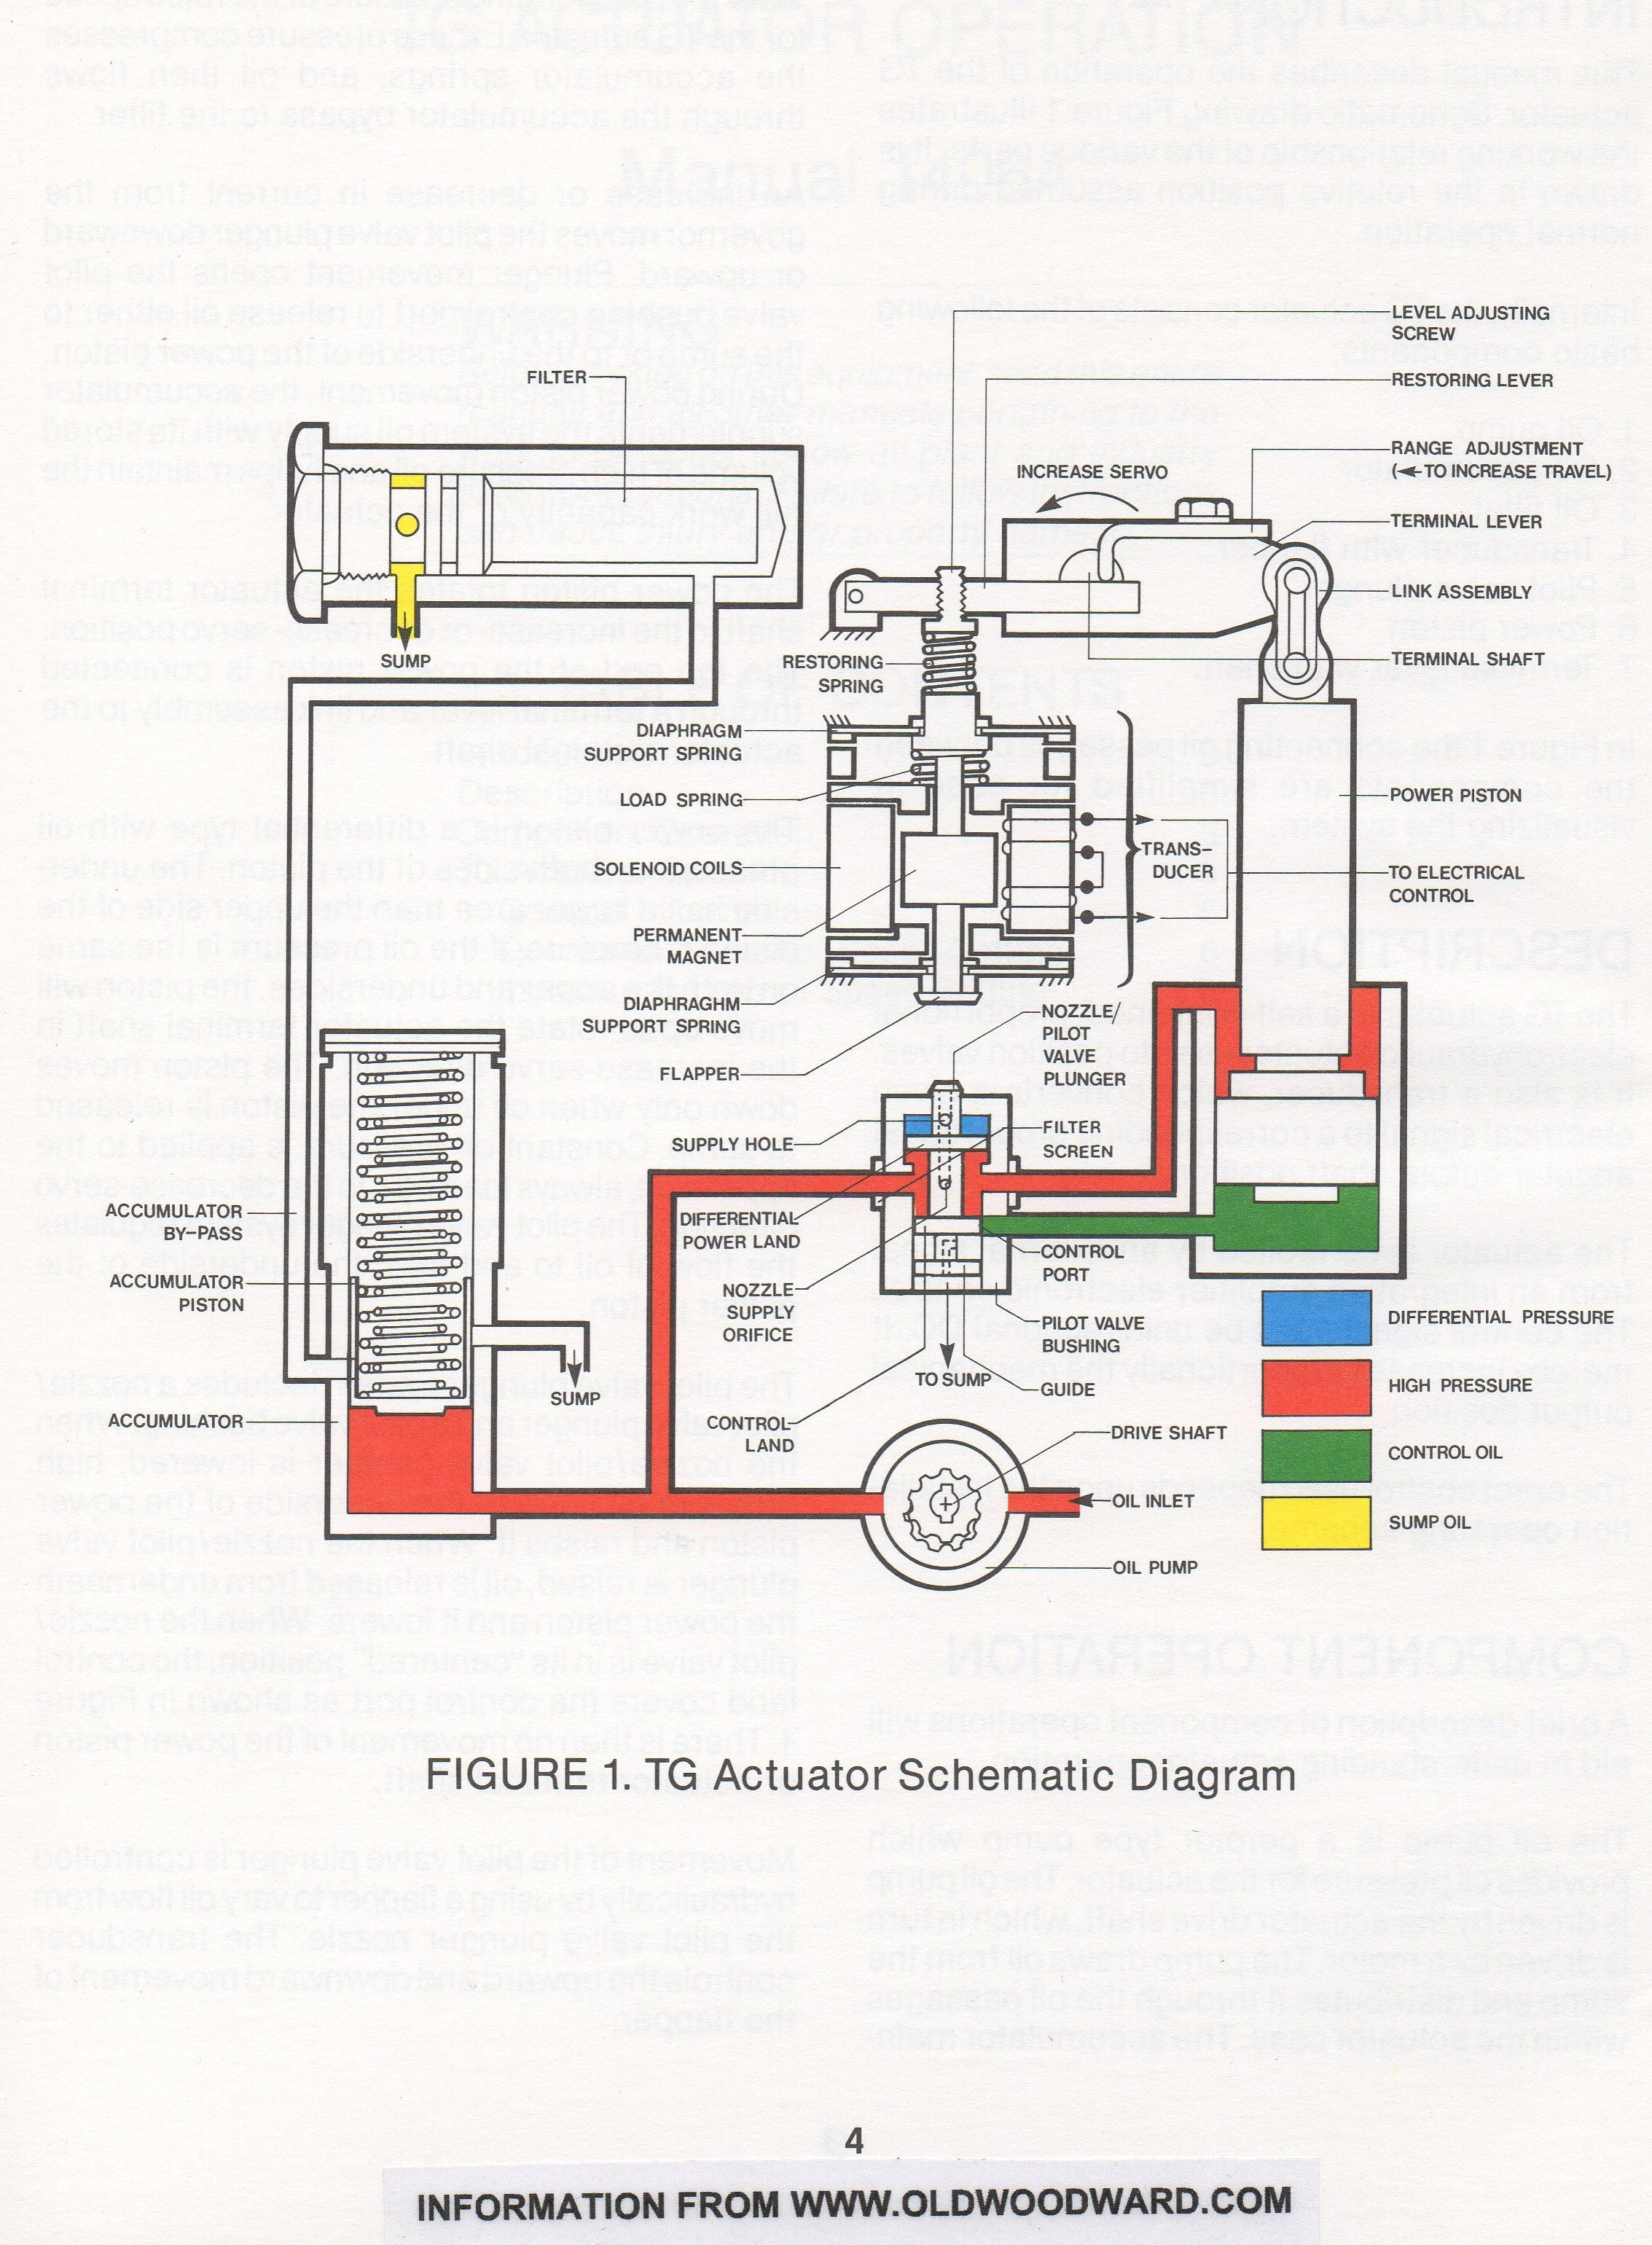 Pin by Bradford Electric s History on Woodward TG Actuator manual